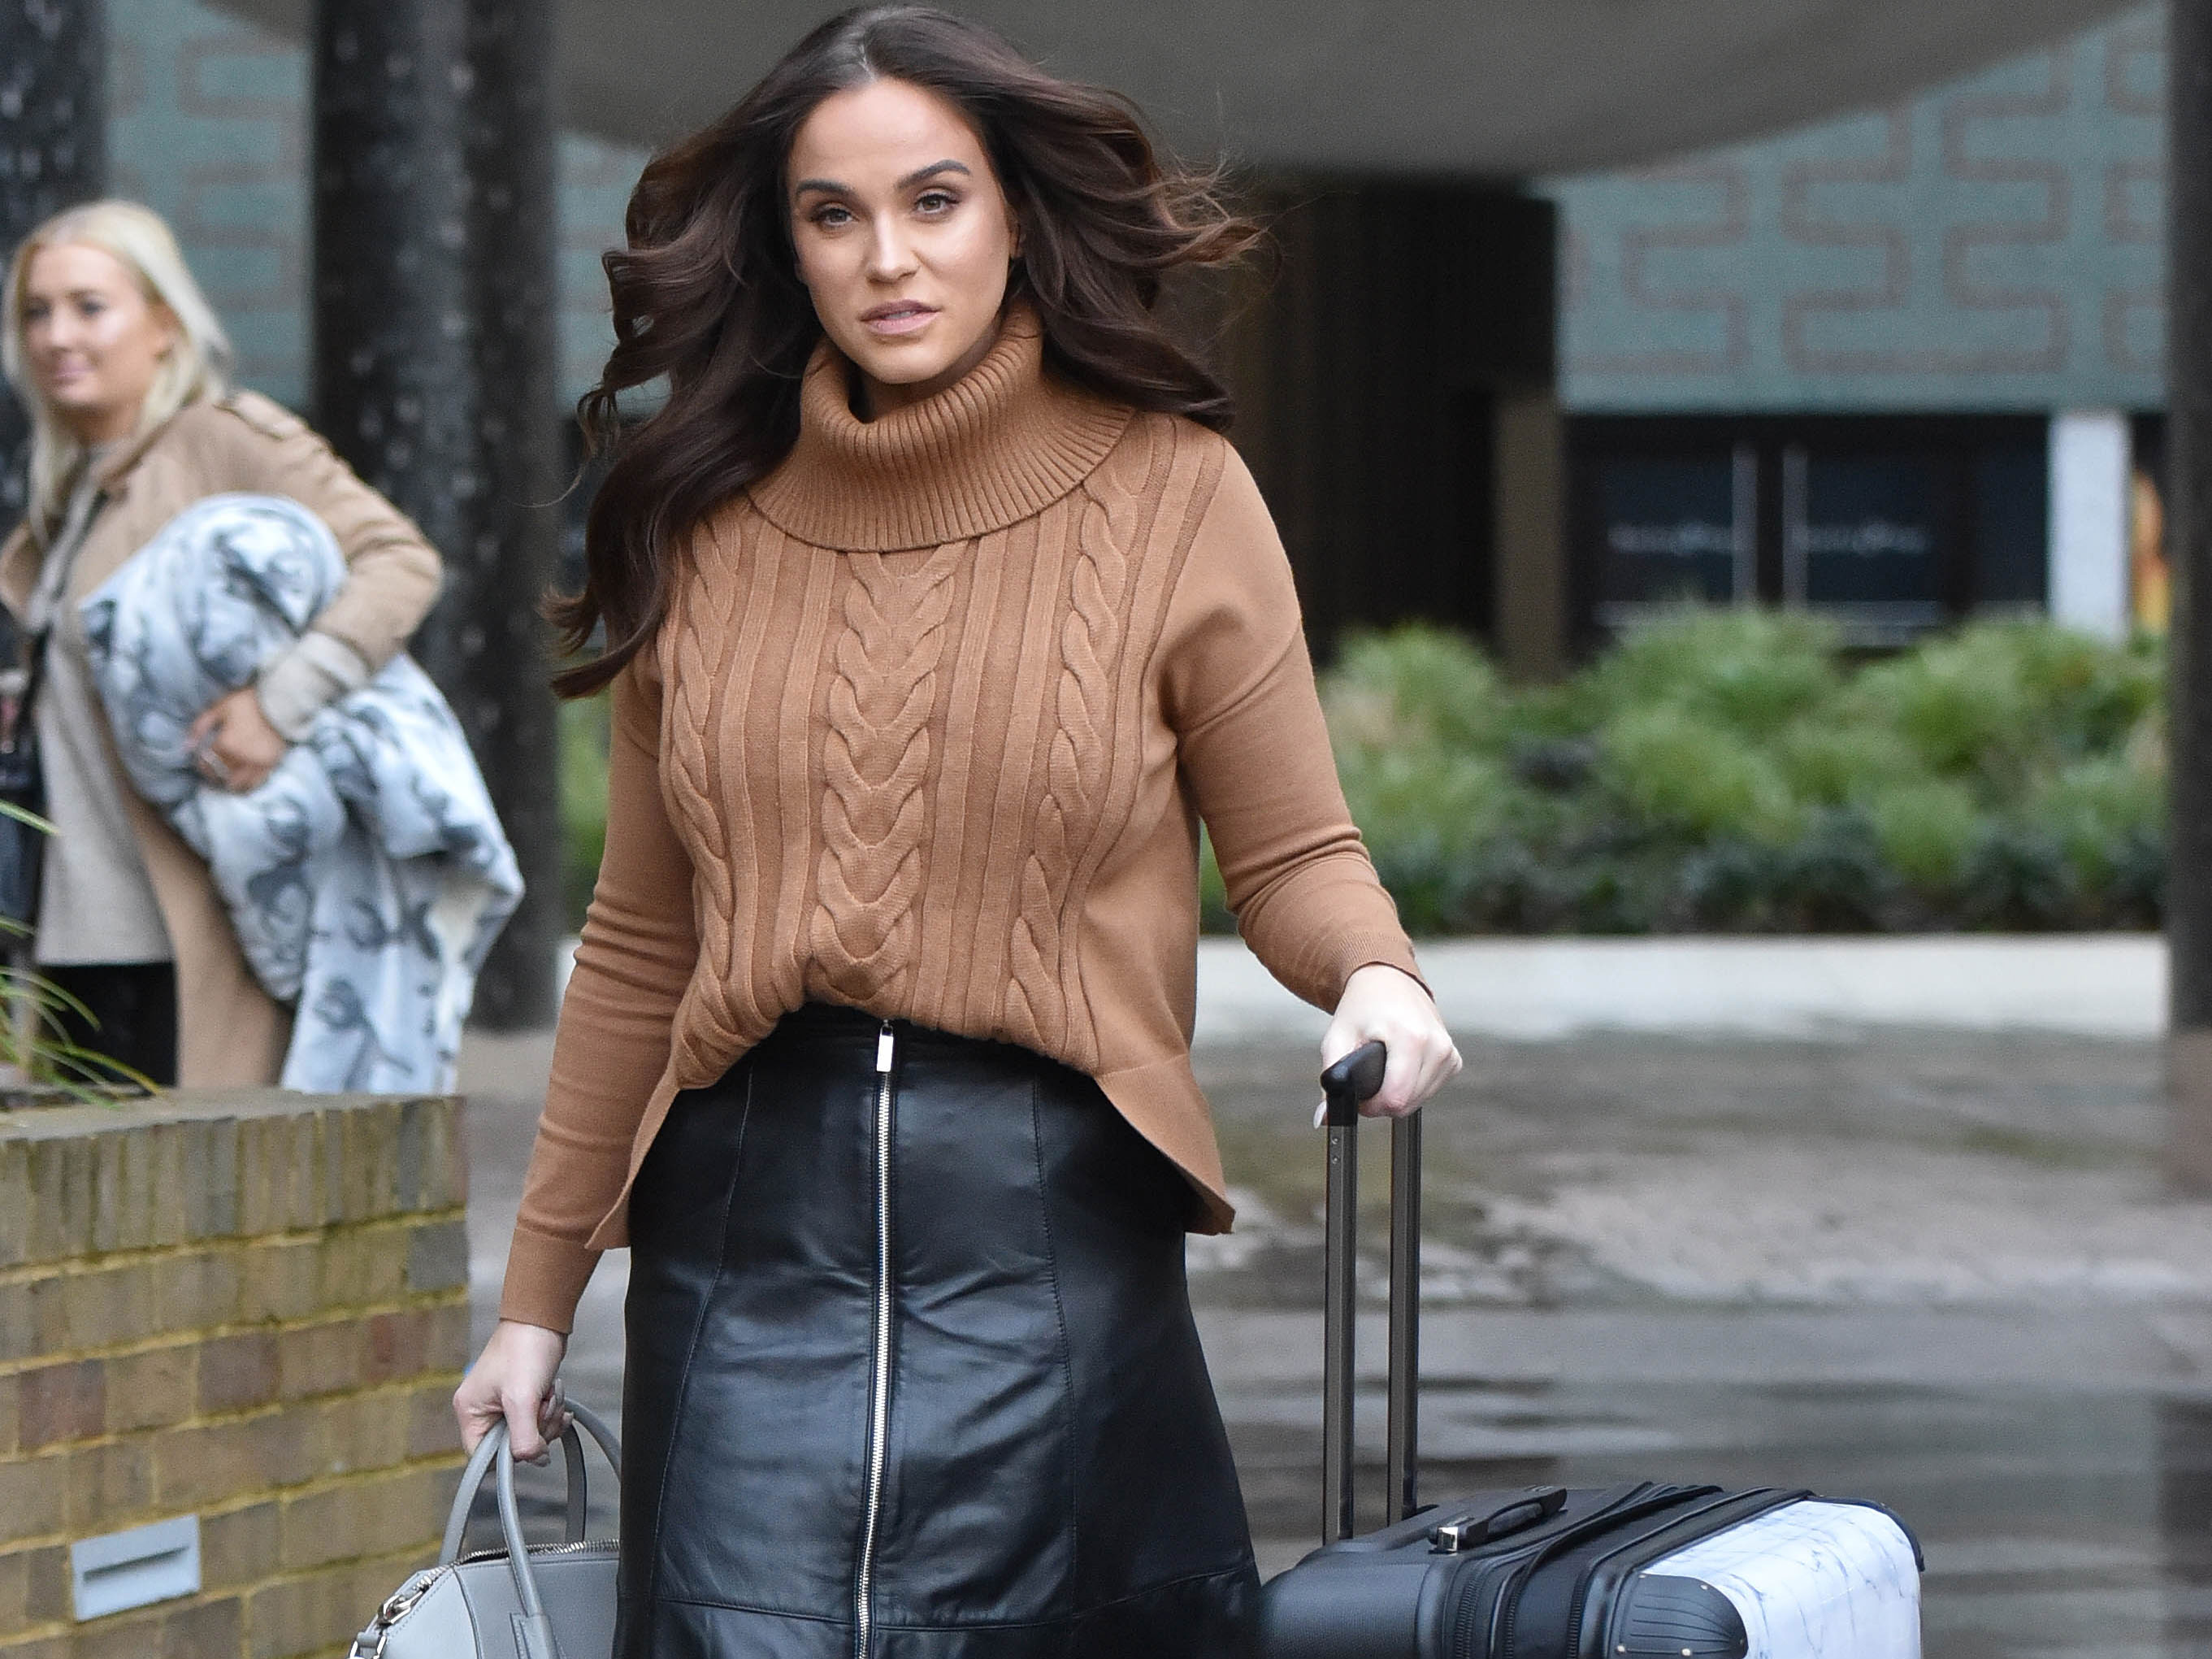 Vicky Pattison bares all in her underwear as she admits her weight gain is impacting her confidence